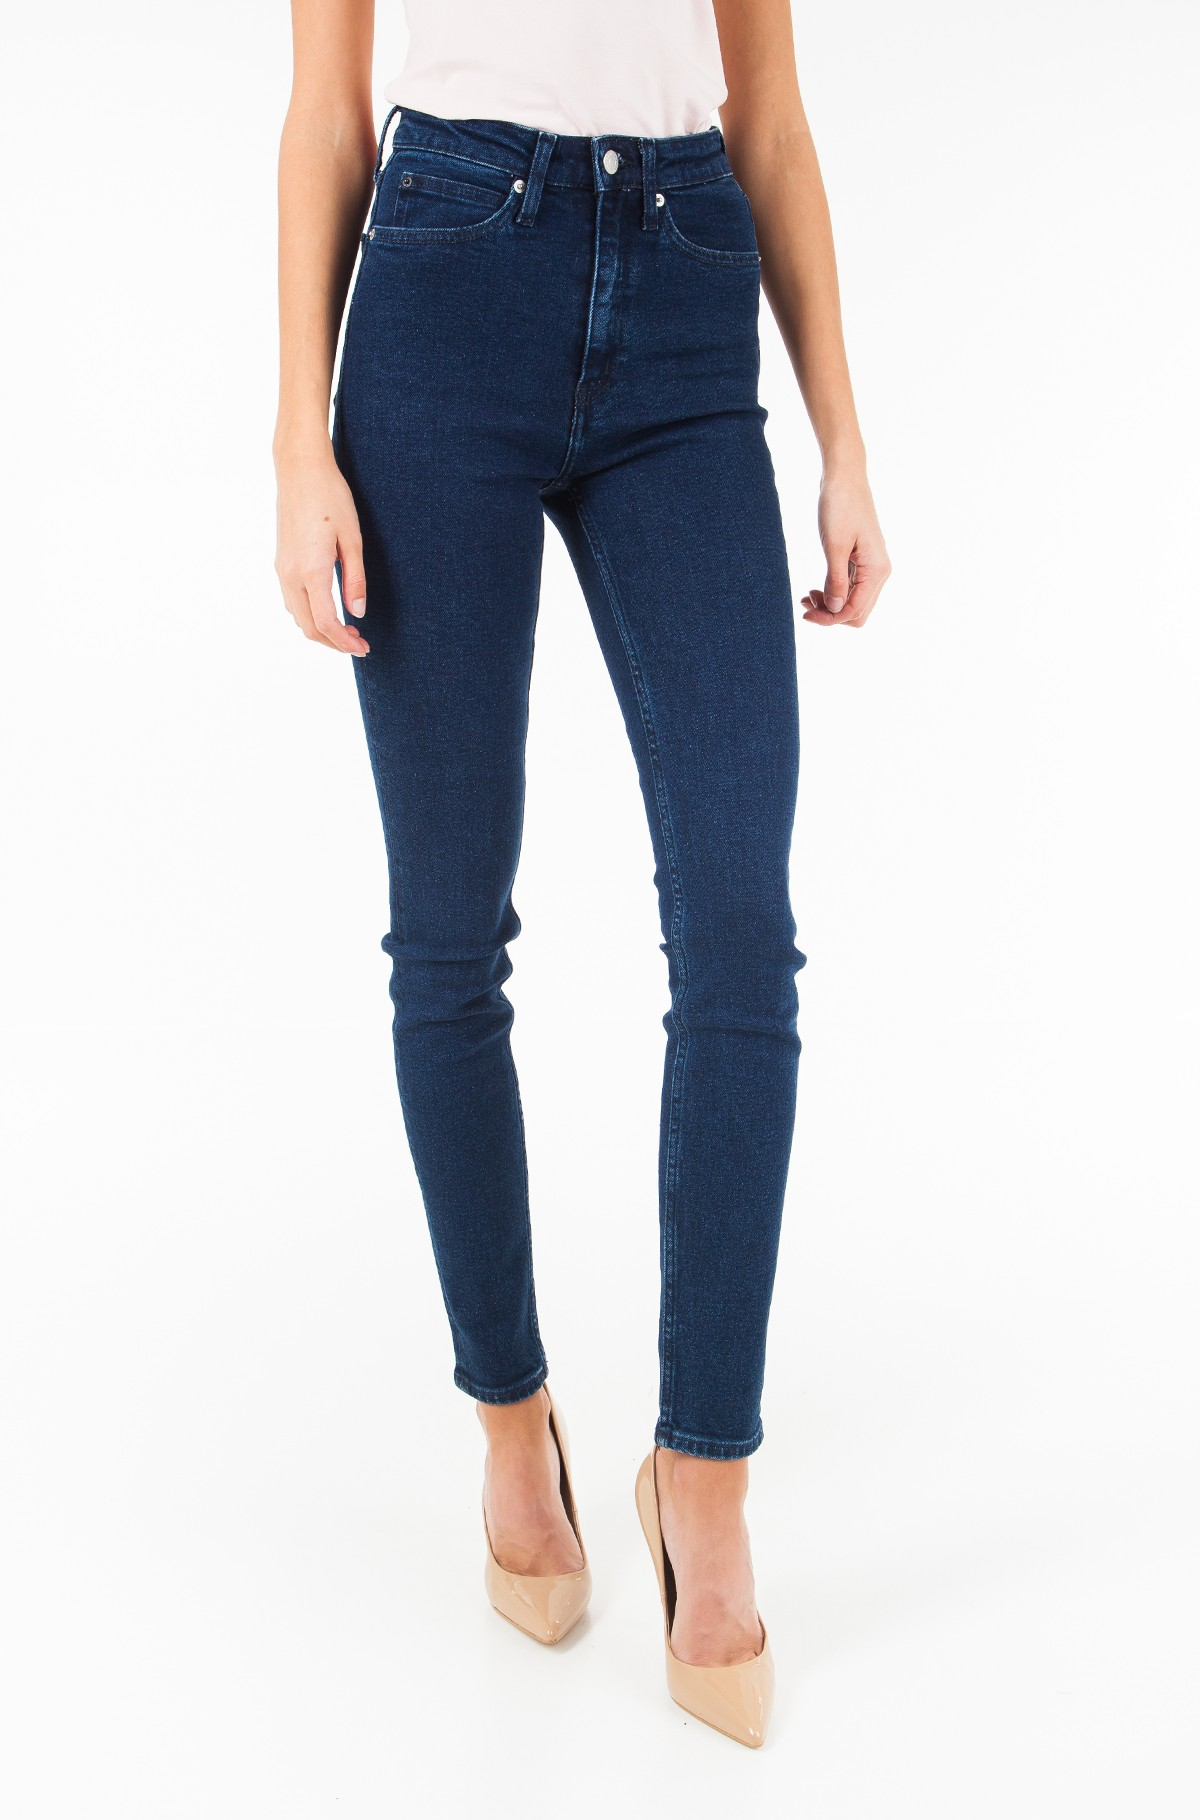 Džinsinės kelnės CKJ 010: High Rise Skinny West - Sanoma Blue	-full-1